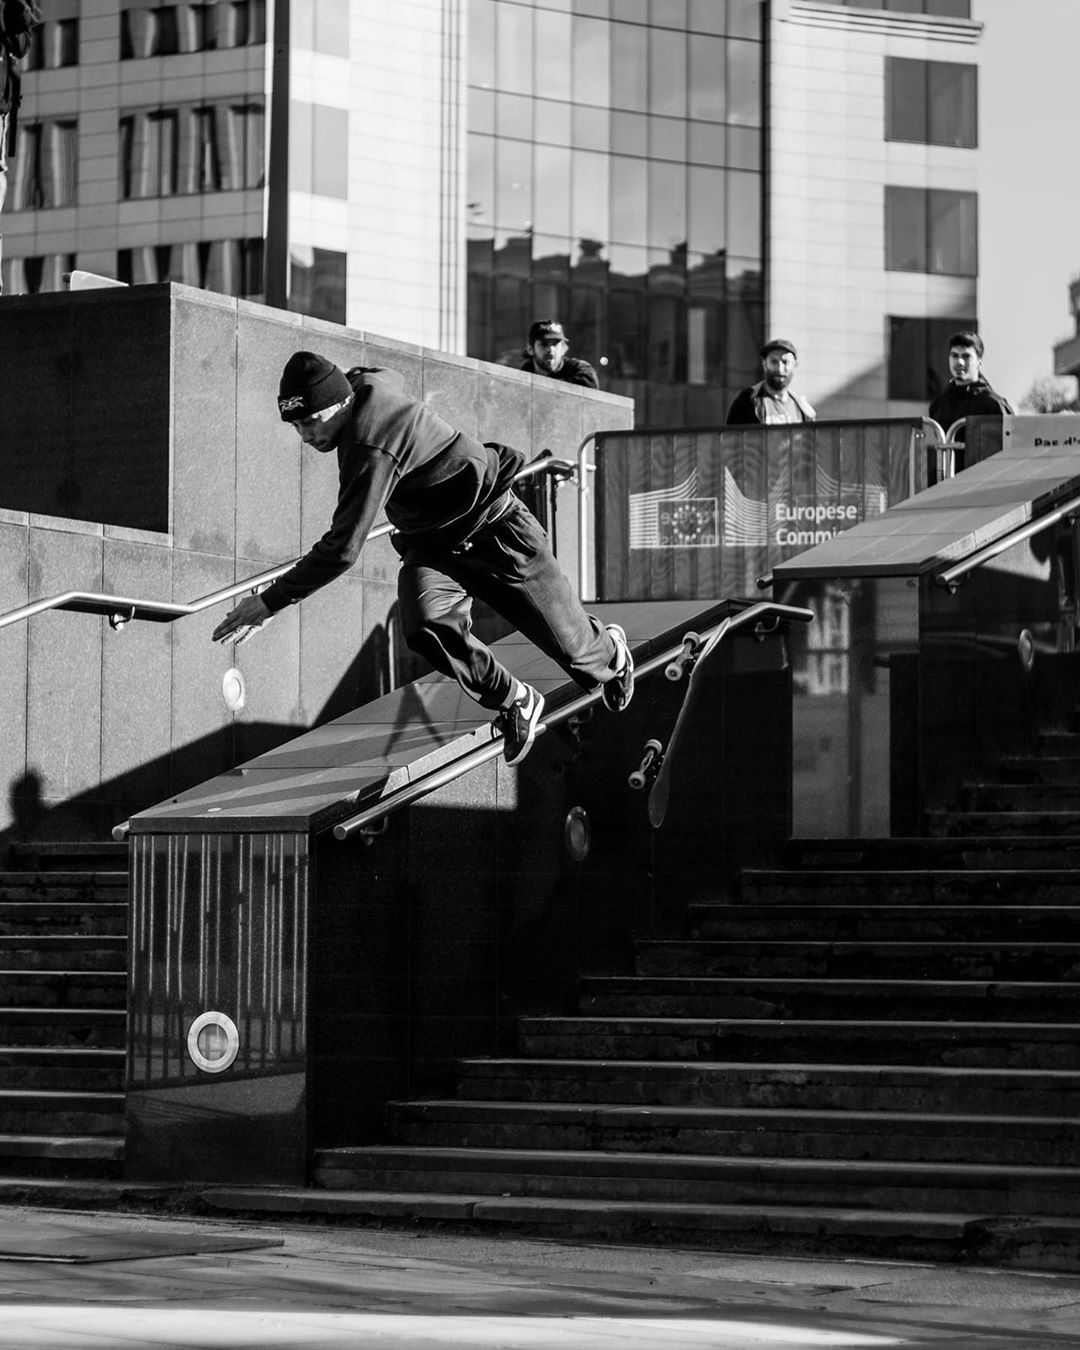 Jarne Verbruggen No Comply Images 6